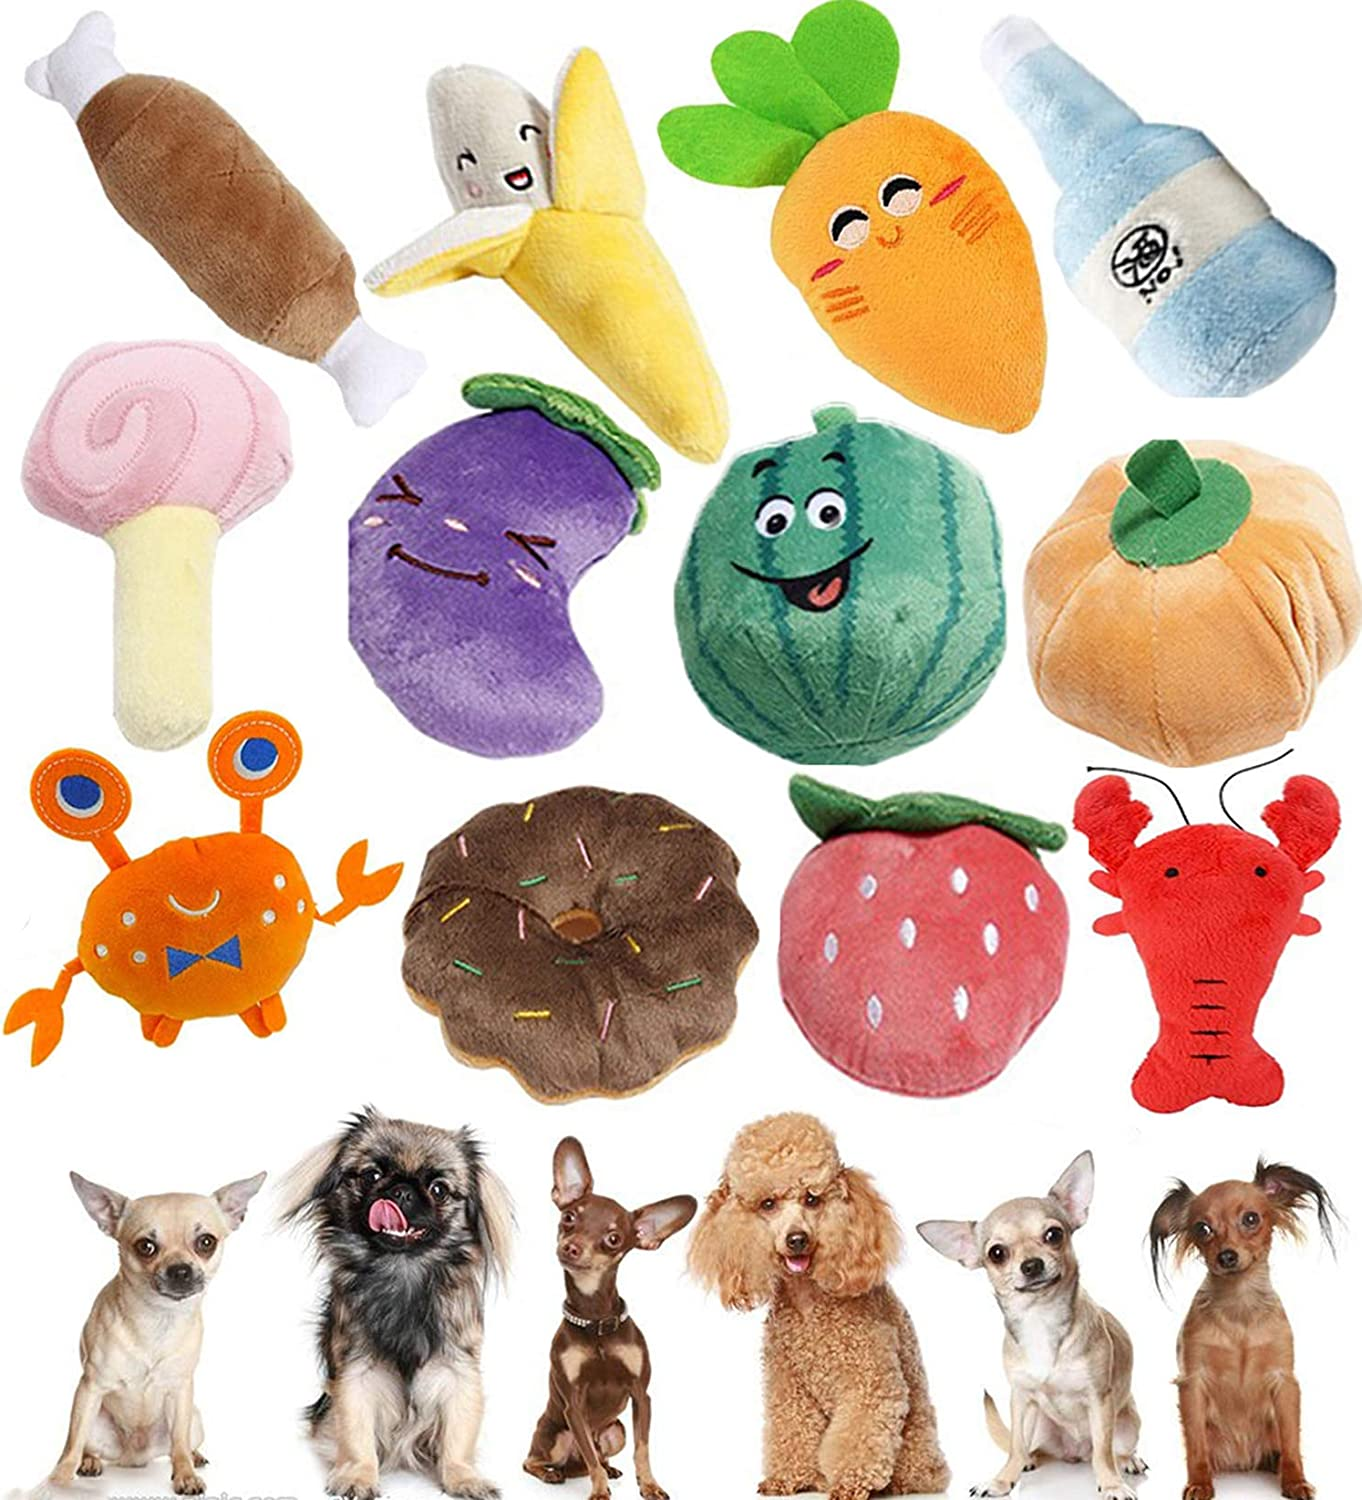 Puppy Squeaky Plush Dog Toy,Stuffed Dog Chew Toys,Dog Toys Bulk with Squeakers